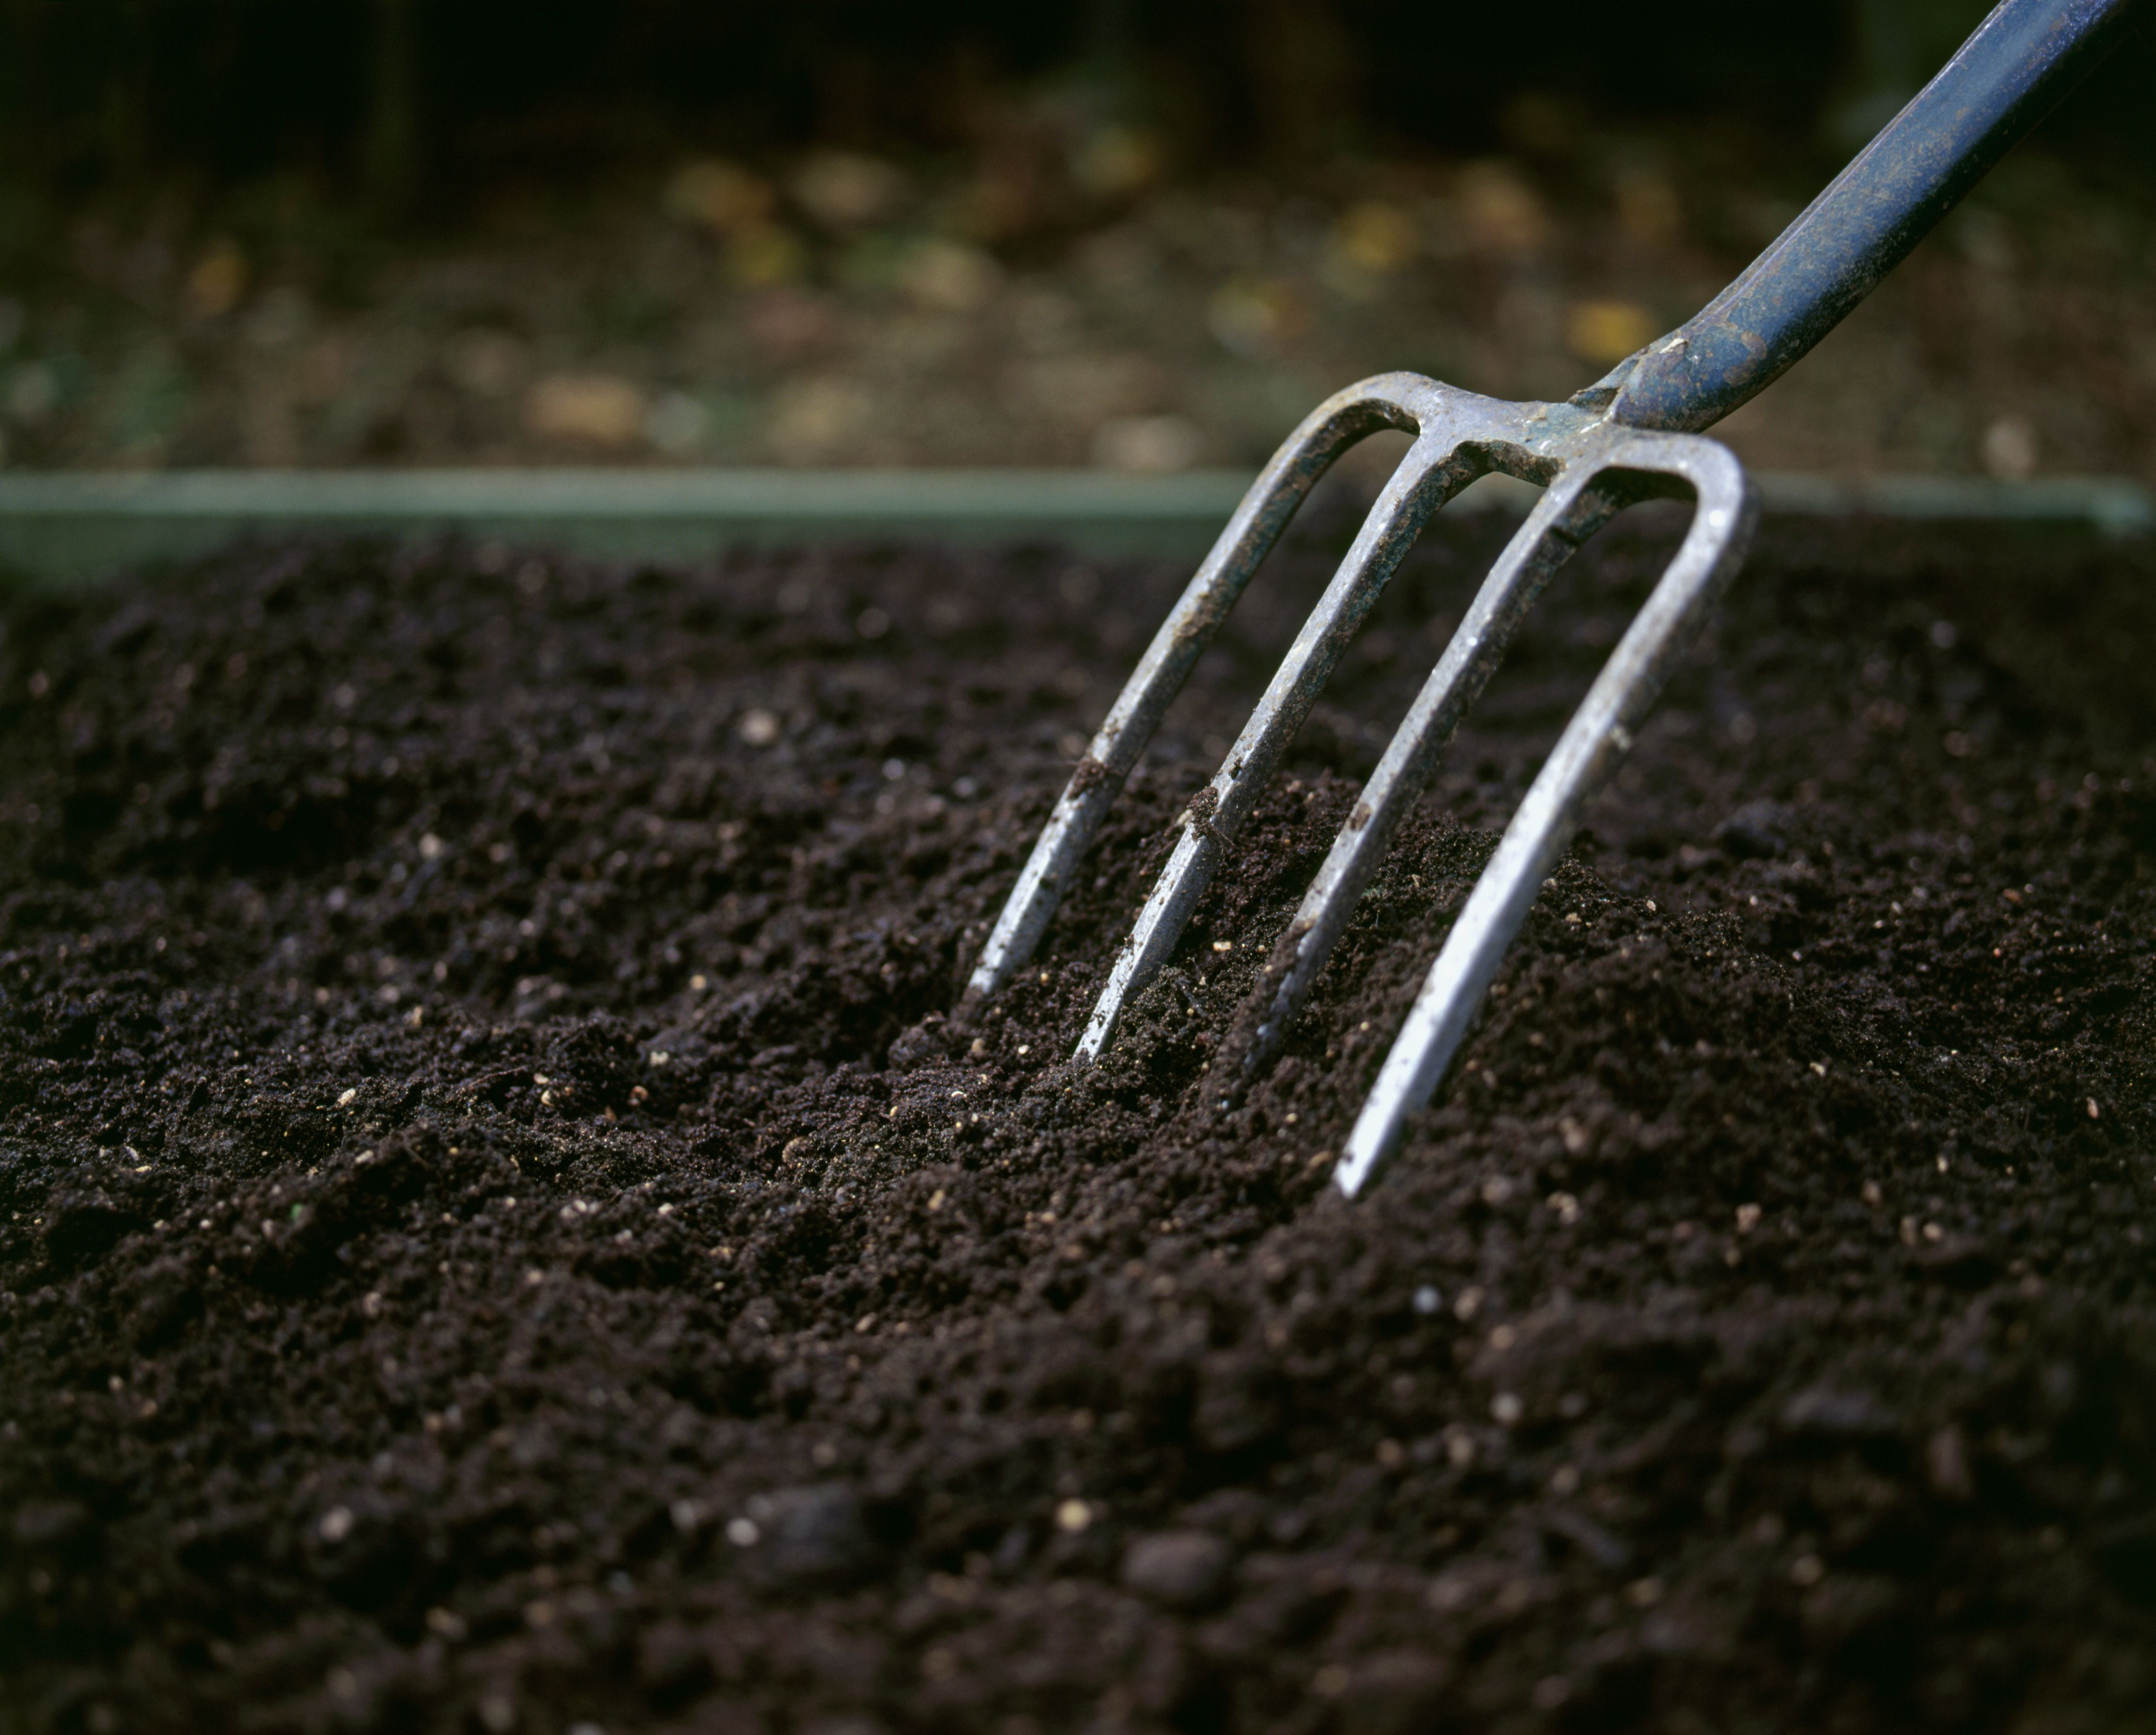 Using a garden fork to spread compost just below the edging of a herb garden, close-up